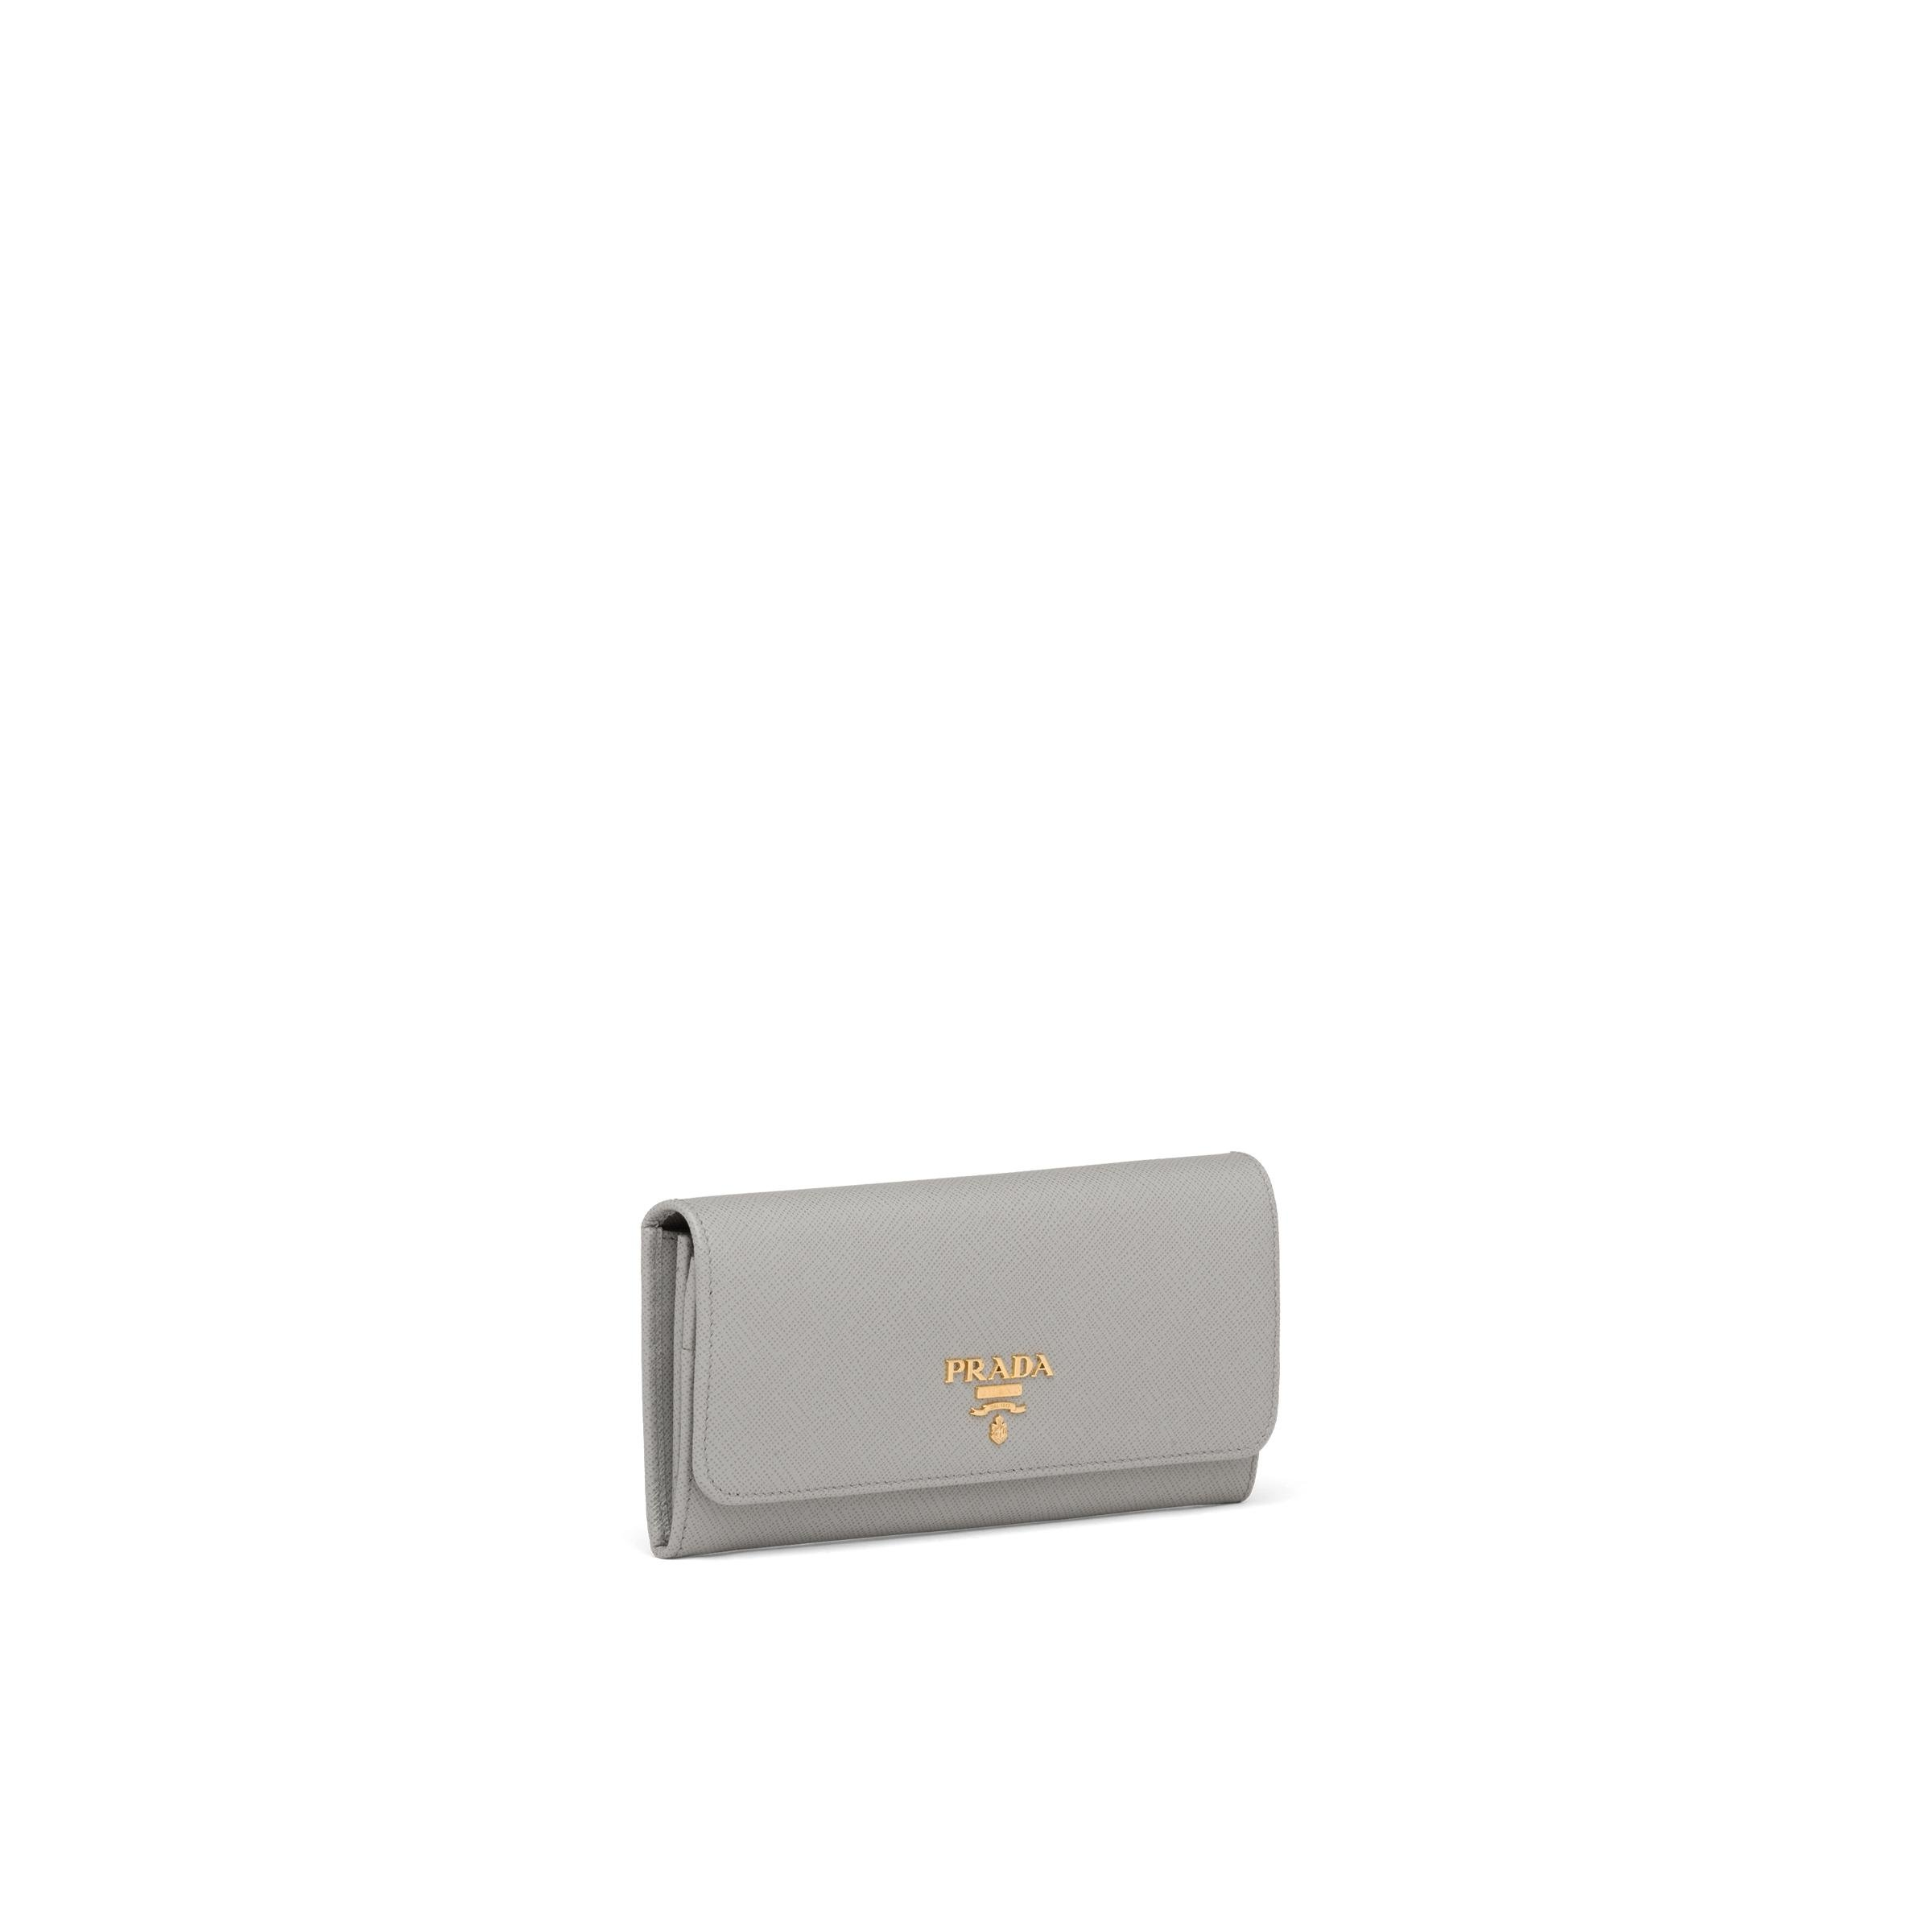 Large Saffiano Leather Wallet Women Cloudy Gray/marble Gray 3